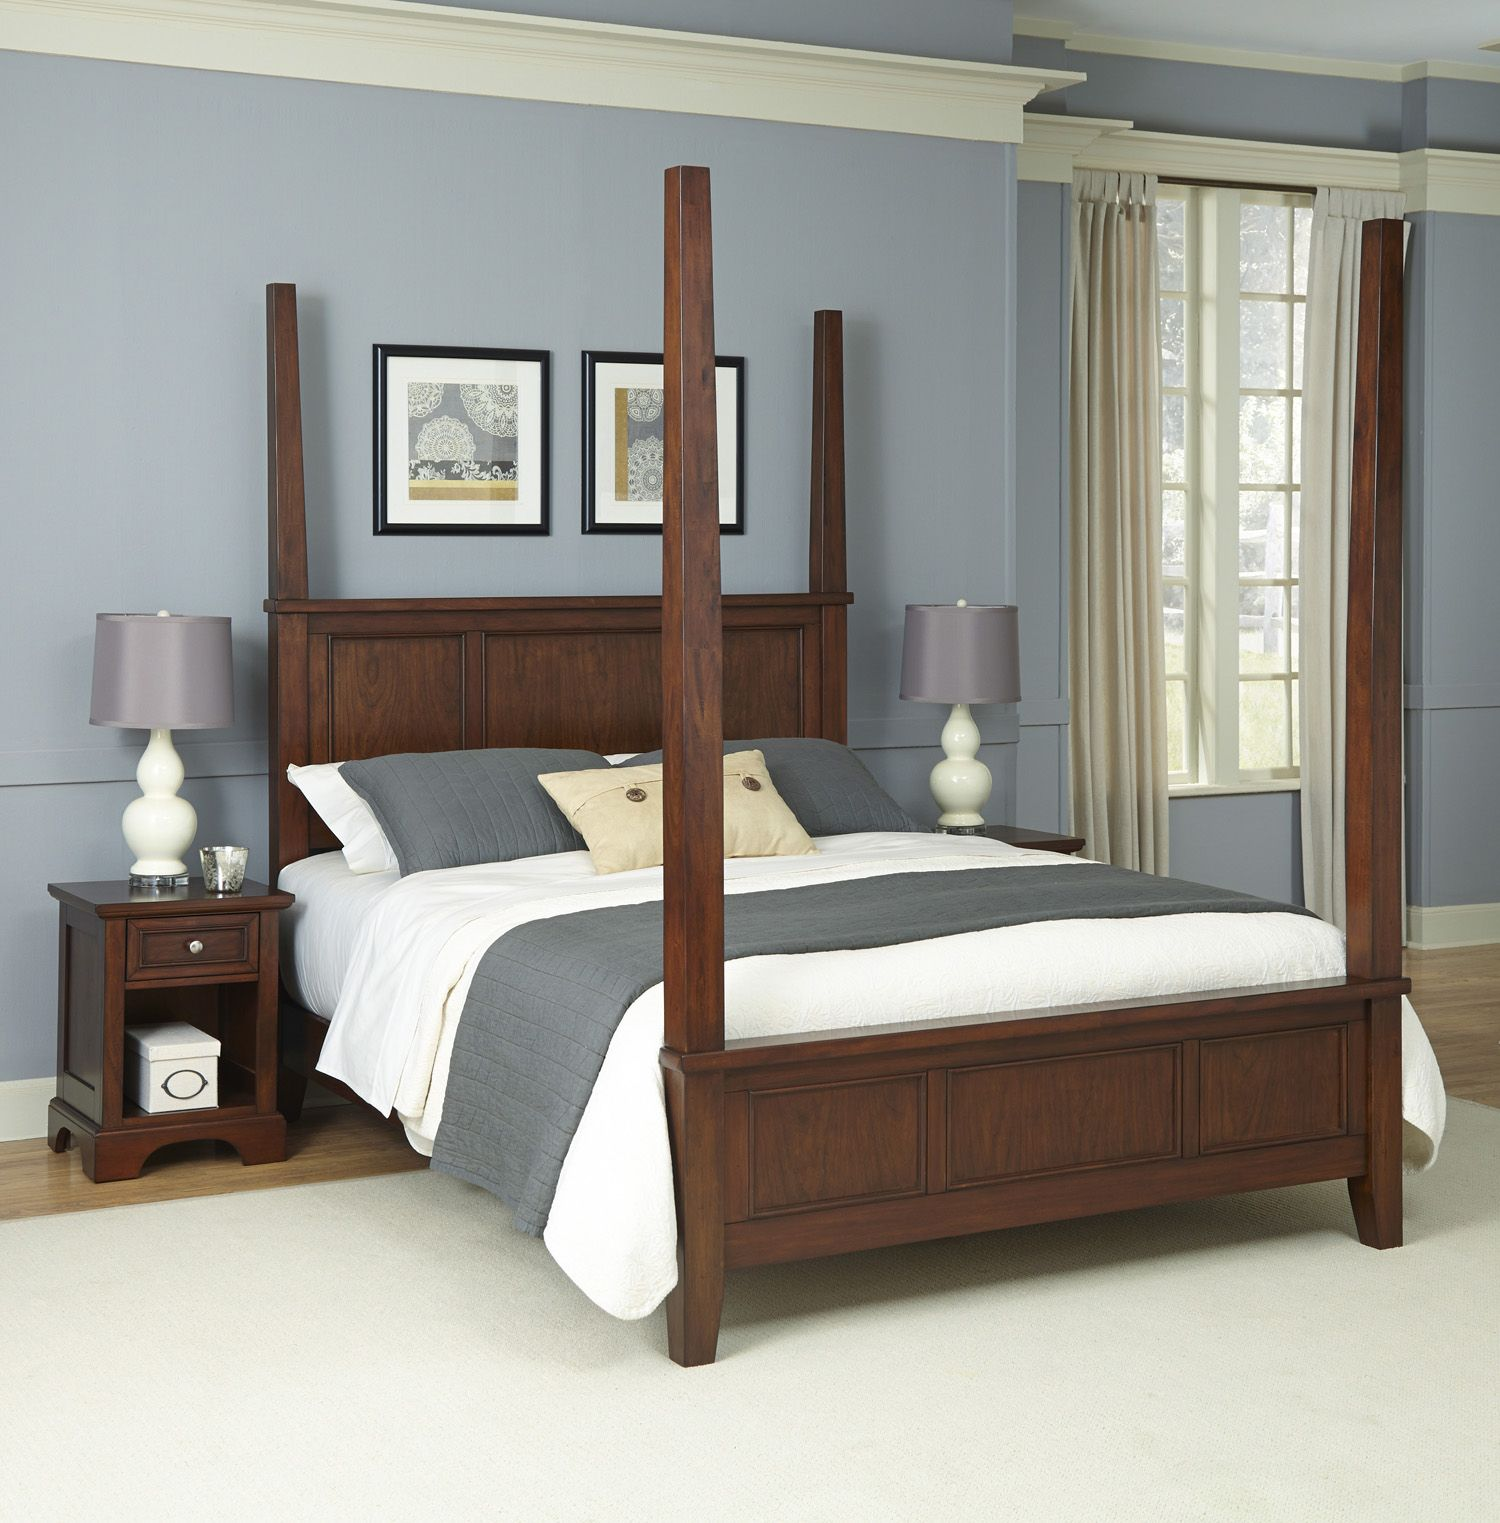 Inspirational Home Styles piece Chesapeake Nightstands and Poster Bedroom Set